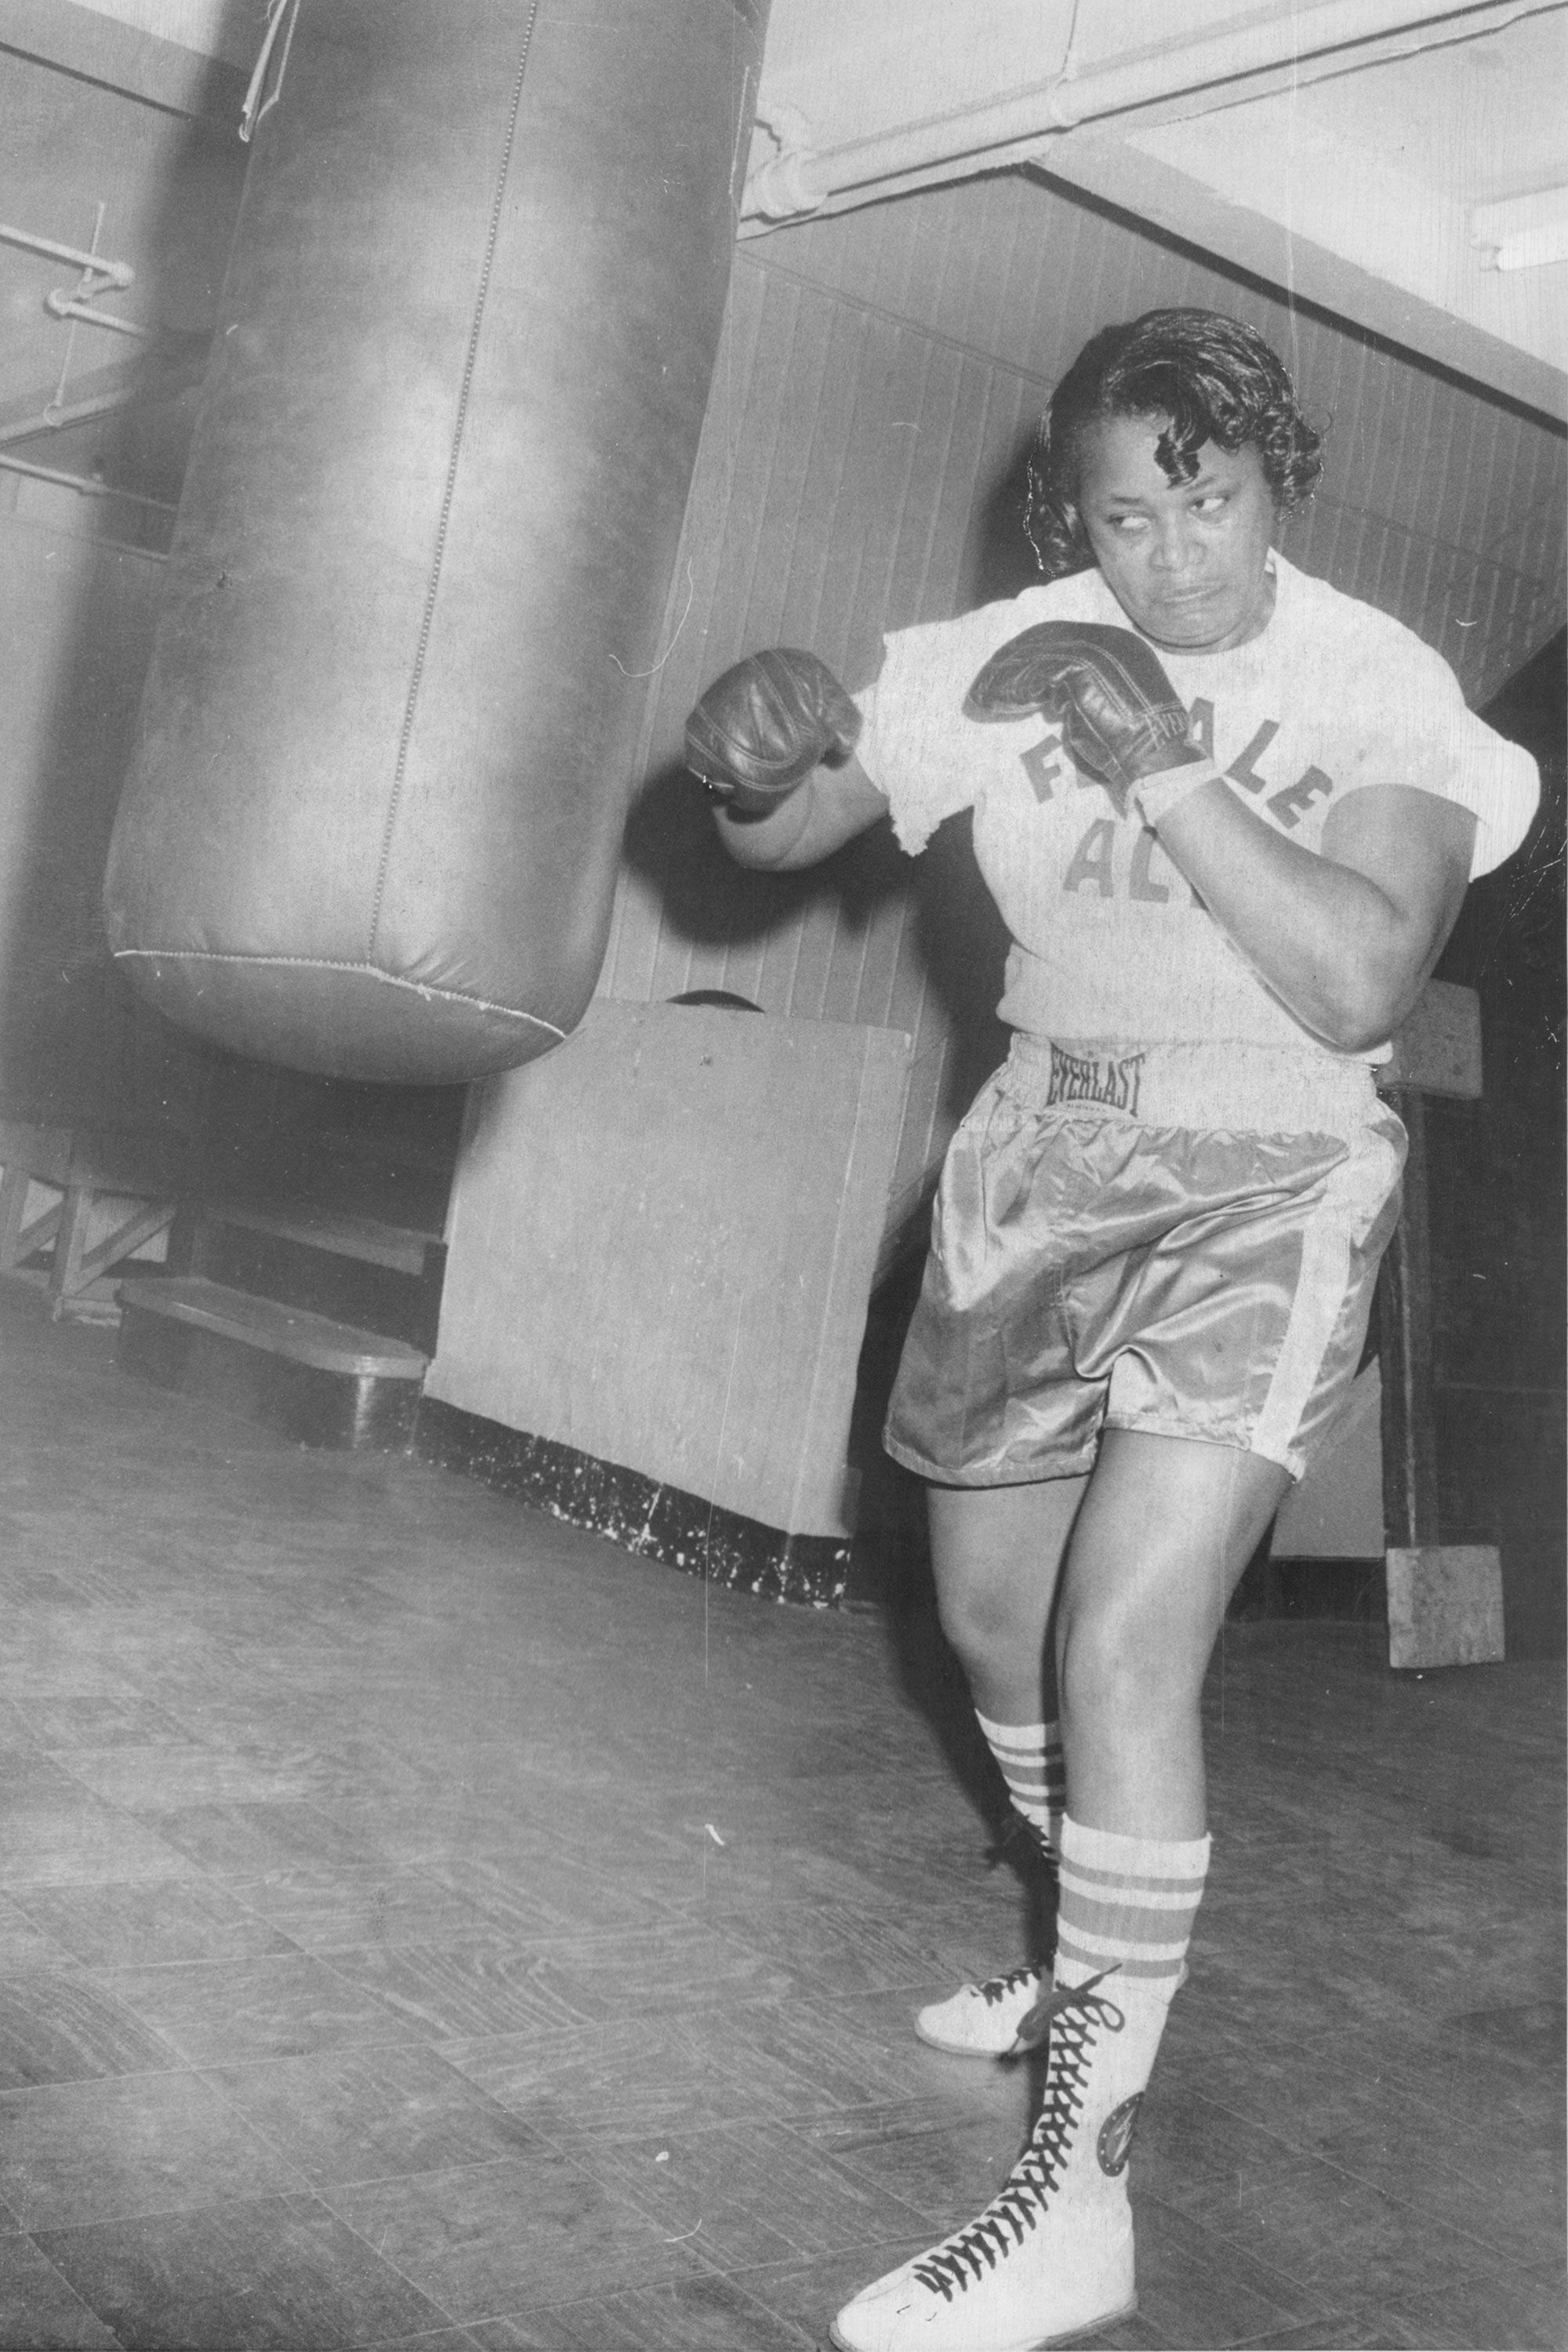 "<p>On June 8, 1975, boxer Jackie Tonawanda&nbsp&#x3B;was the first woman to fight in New York's Madison Square Garden<span class=""redactor-invisible-space"" data-verified=""redactor"" data-redactor-tag=""span"" data-redactor-class=""redactor-invisible-space"">. She&nbsp&#x3B;</span>went up against Larry Rodania—and knocked him&nbsp&#x3B;out in the second round. After that, she&nbsp&#x3B;was dubbed ""the female Muhammad Ali.""</p>"